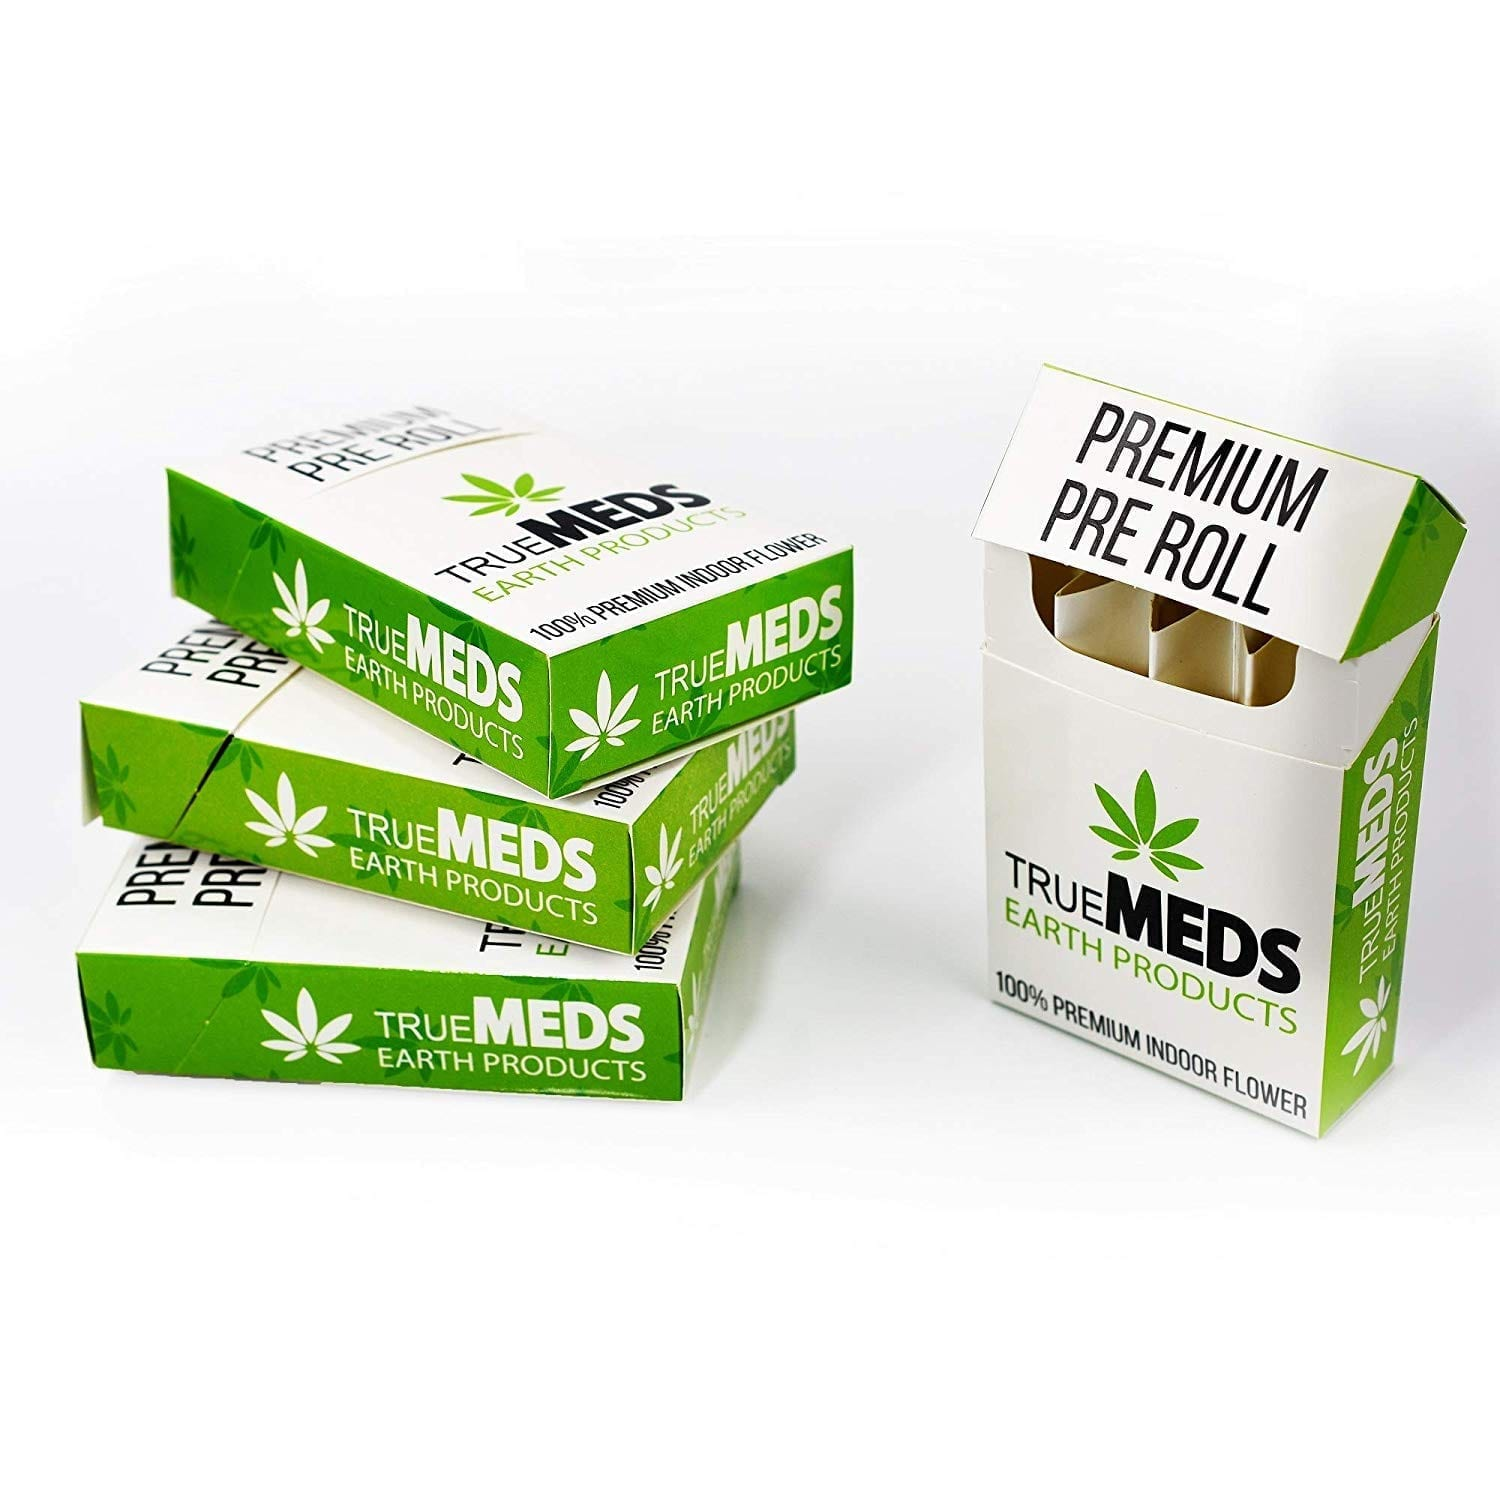 true meds earth products